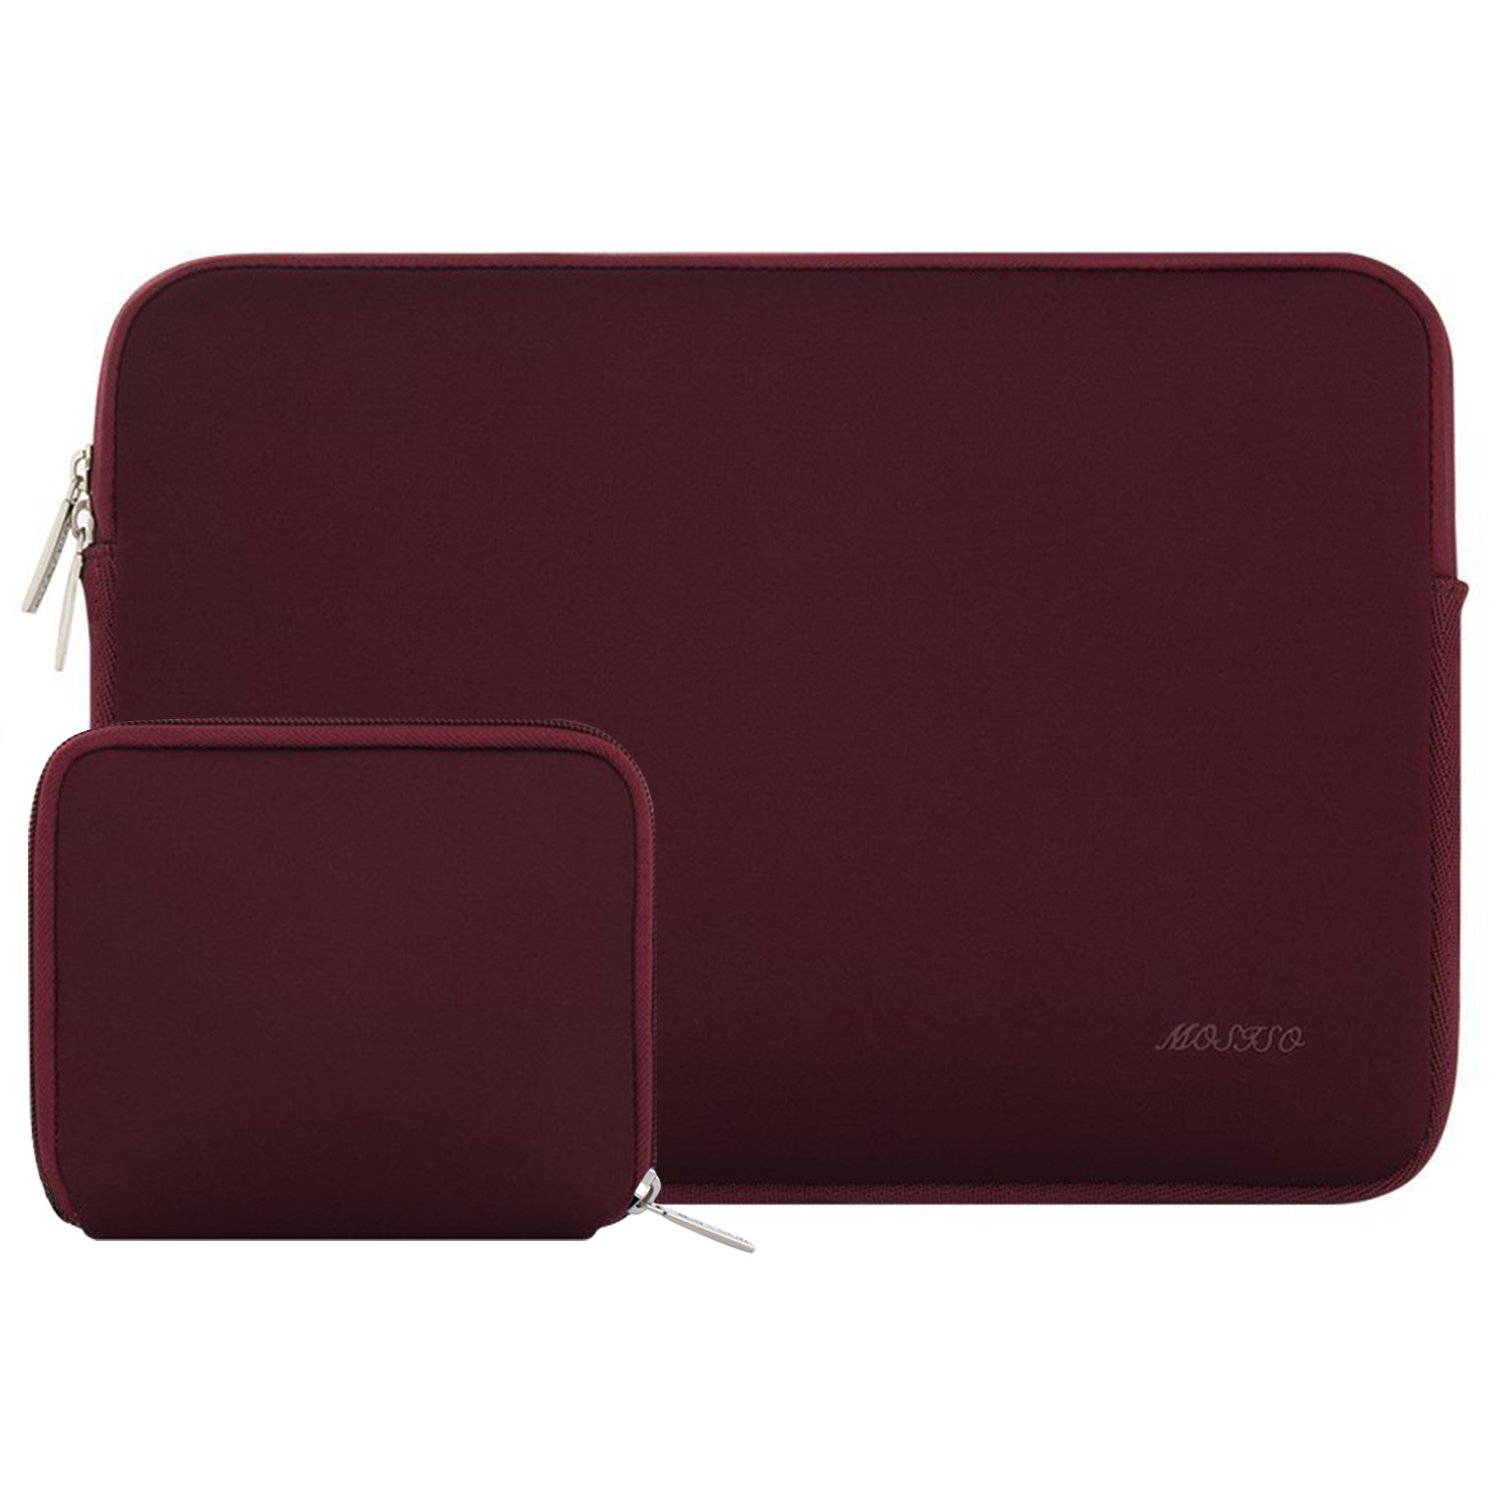 MOSISO Water Repellent Lycra Sleeve Bag Cover Compatible 13-13.3 Inch Laptop with Small Case Compatible MacBook Charger, Wine Red by MOSISO (Image #1)